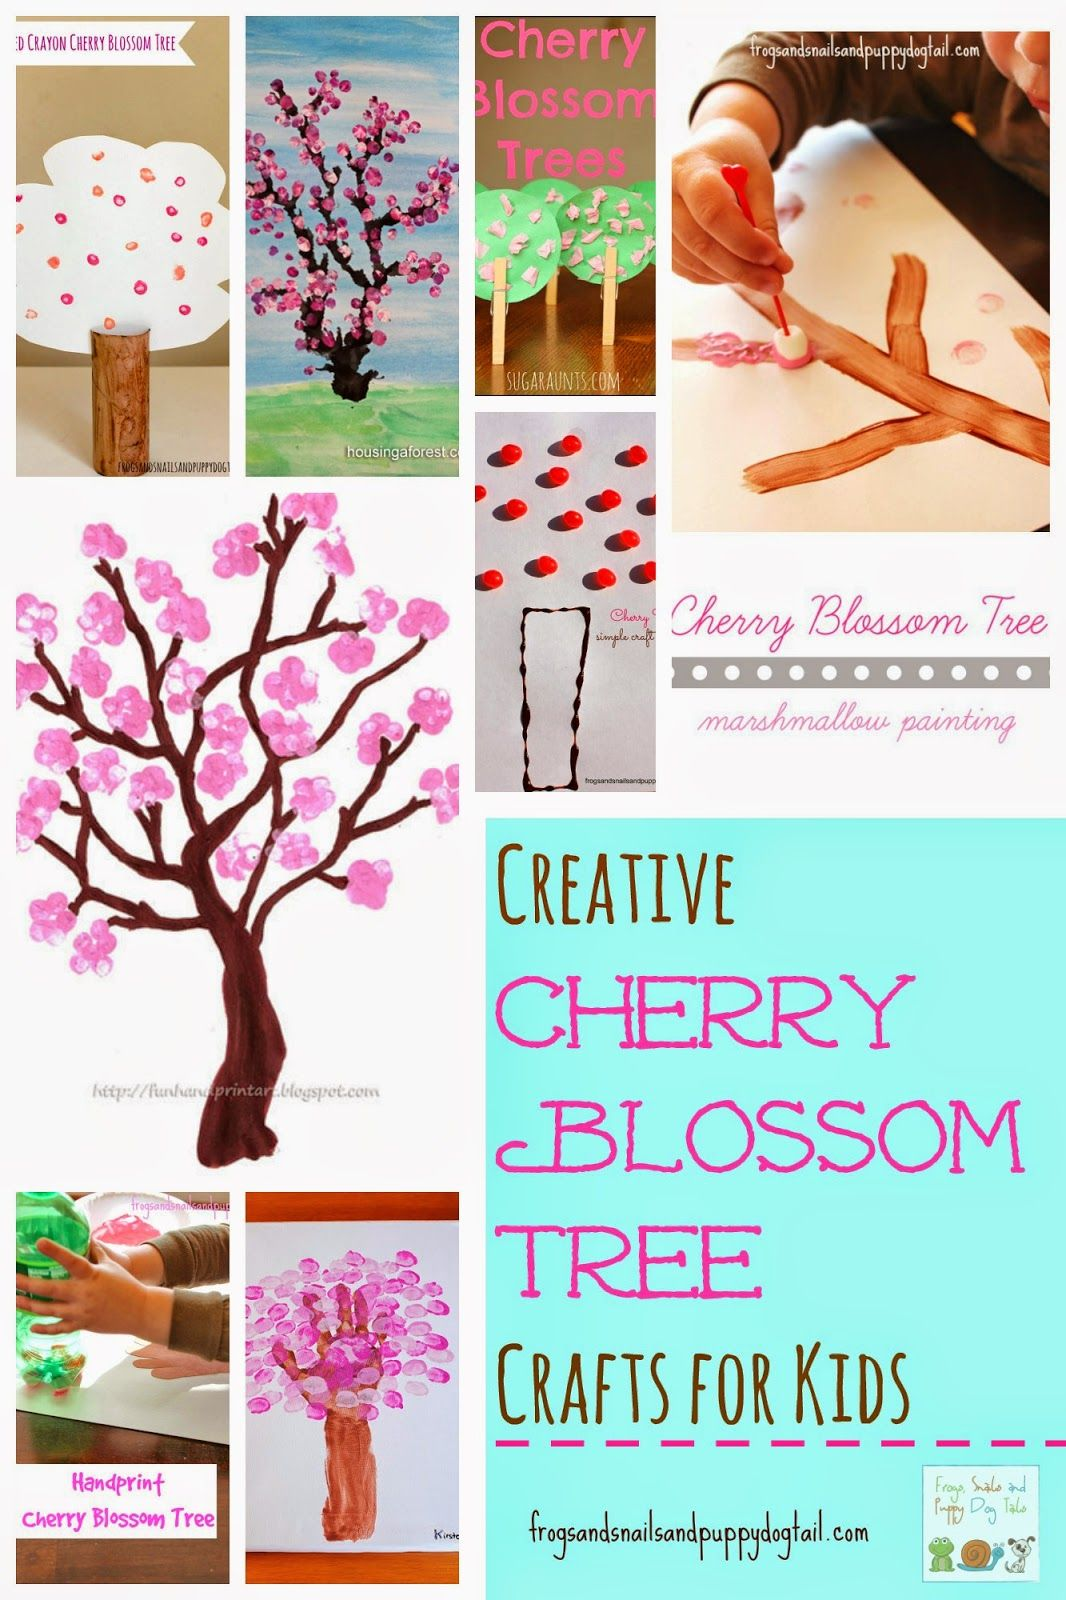 Creative Cherry Blossom Tree Crafts for Kids by FSPDT Fun Crafts To Do,  Spring Crafts